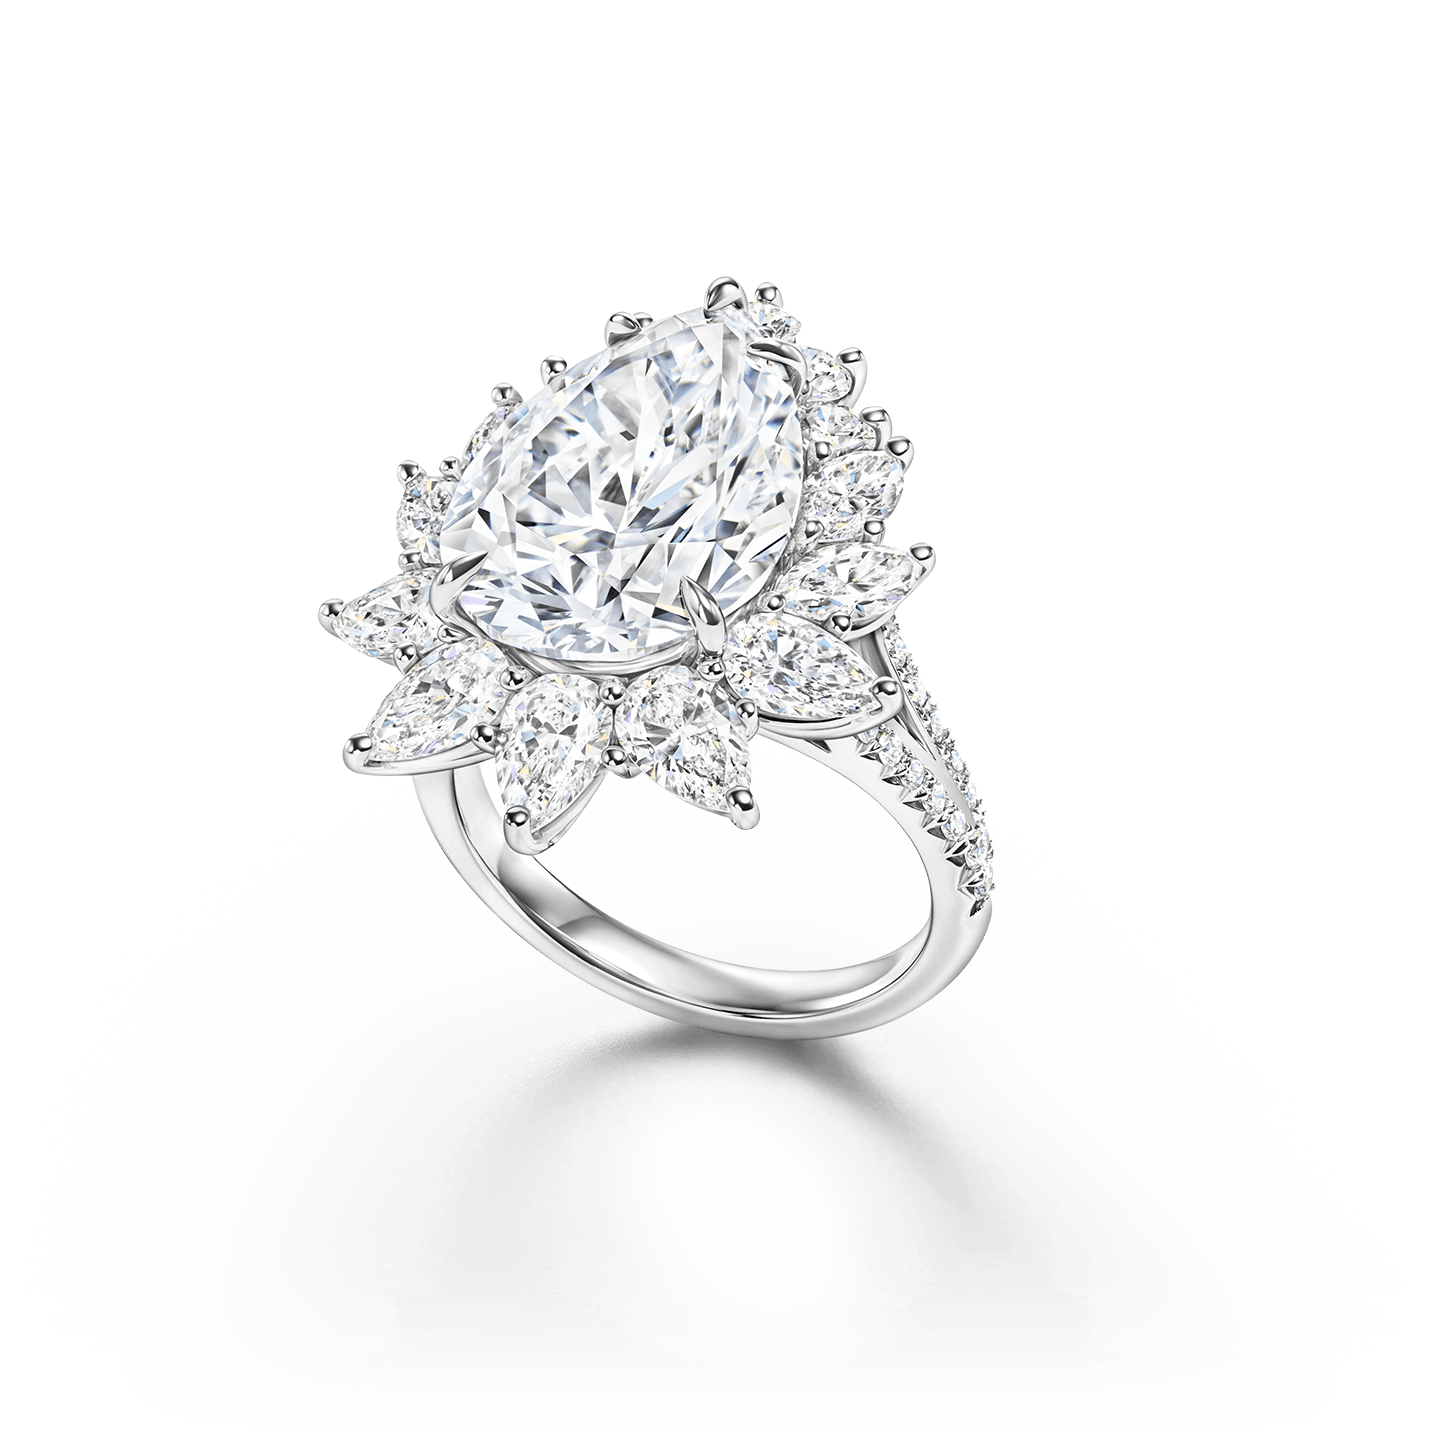 An illustrious diamond ring featuring a 6.22 carat pear-shaped diamond with 14 pear-shaped and round brilliant diamonds set in platinum